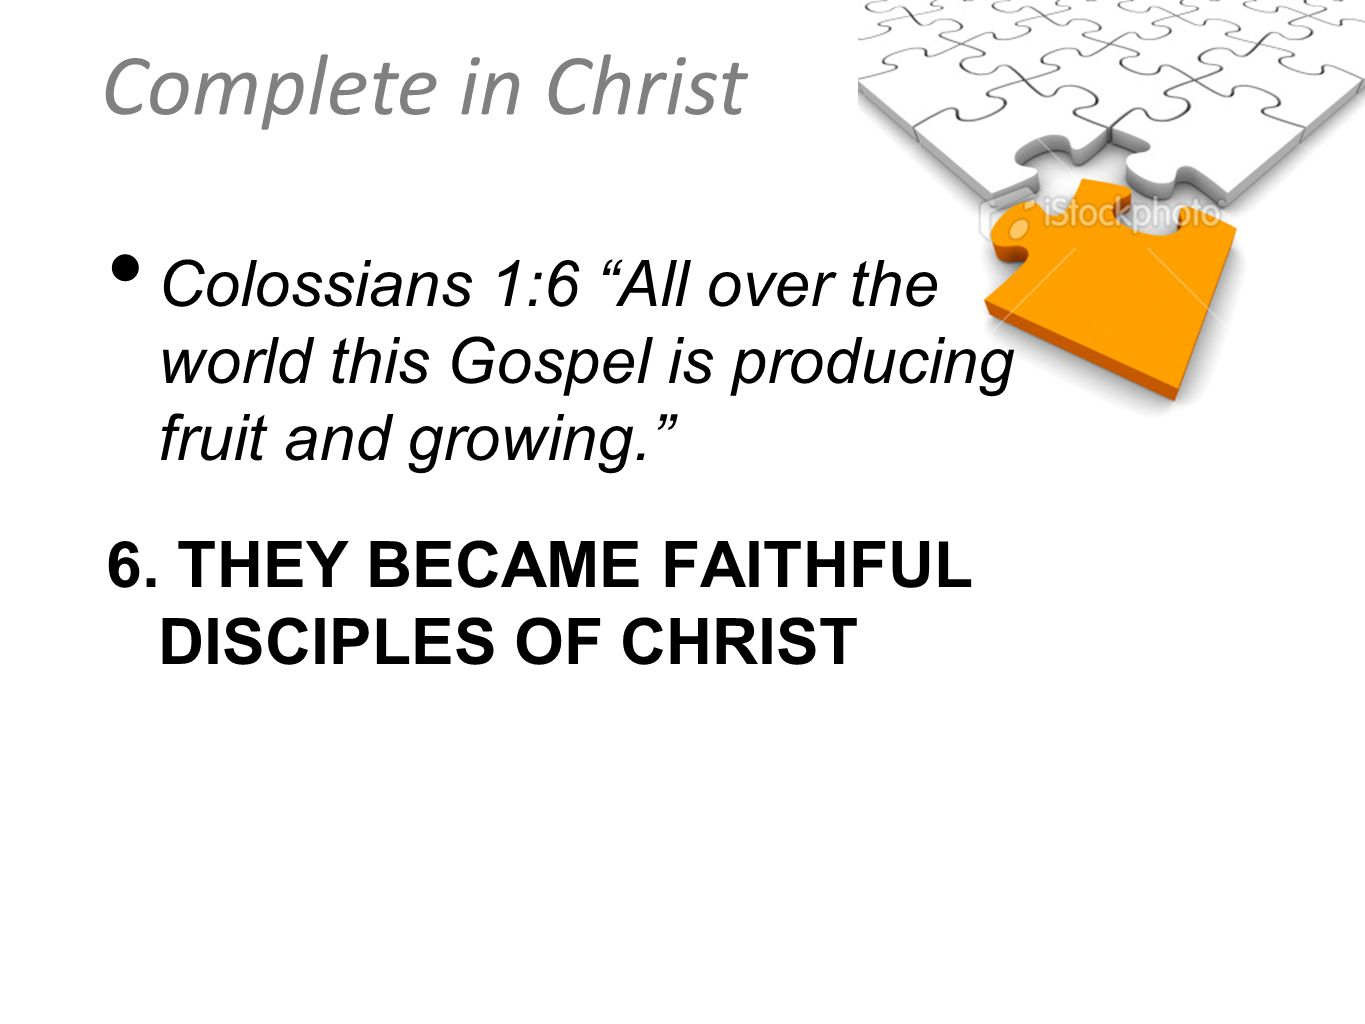 Colossians 1:6 All over the world this Gospel is producing fruit and growing.